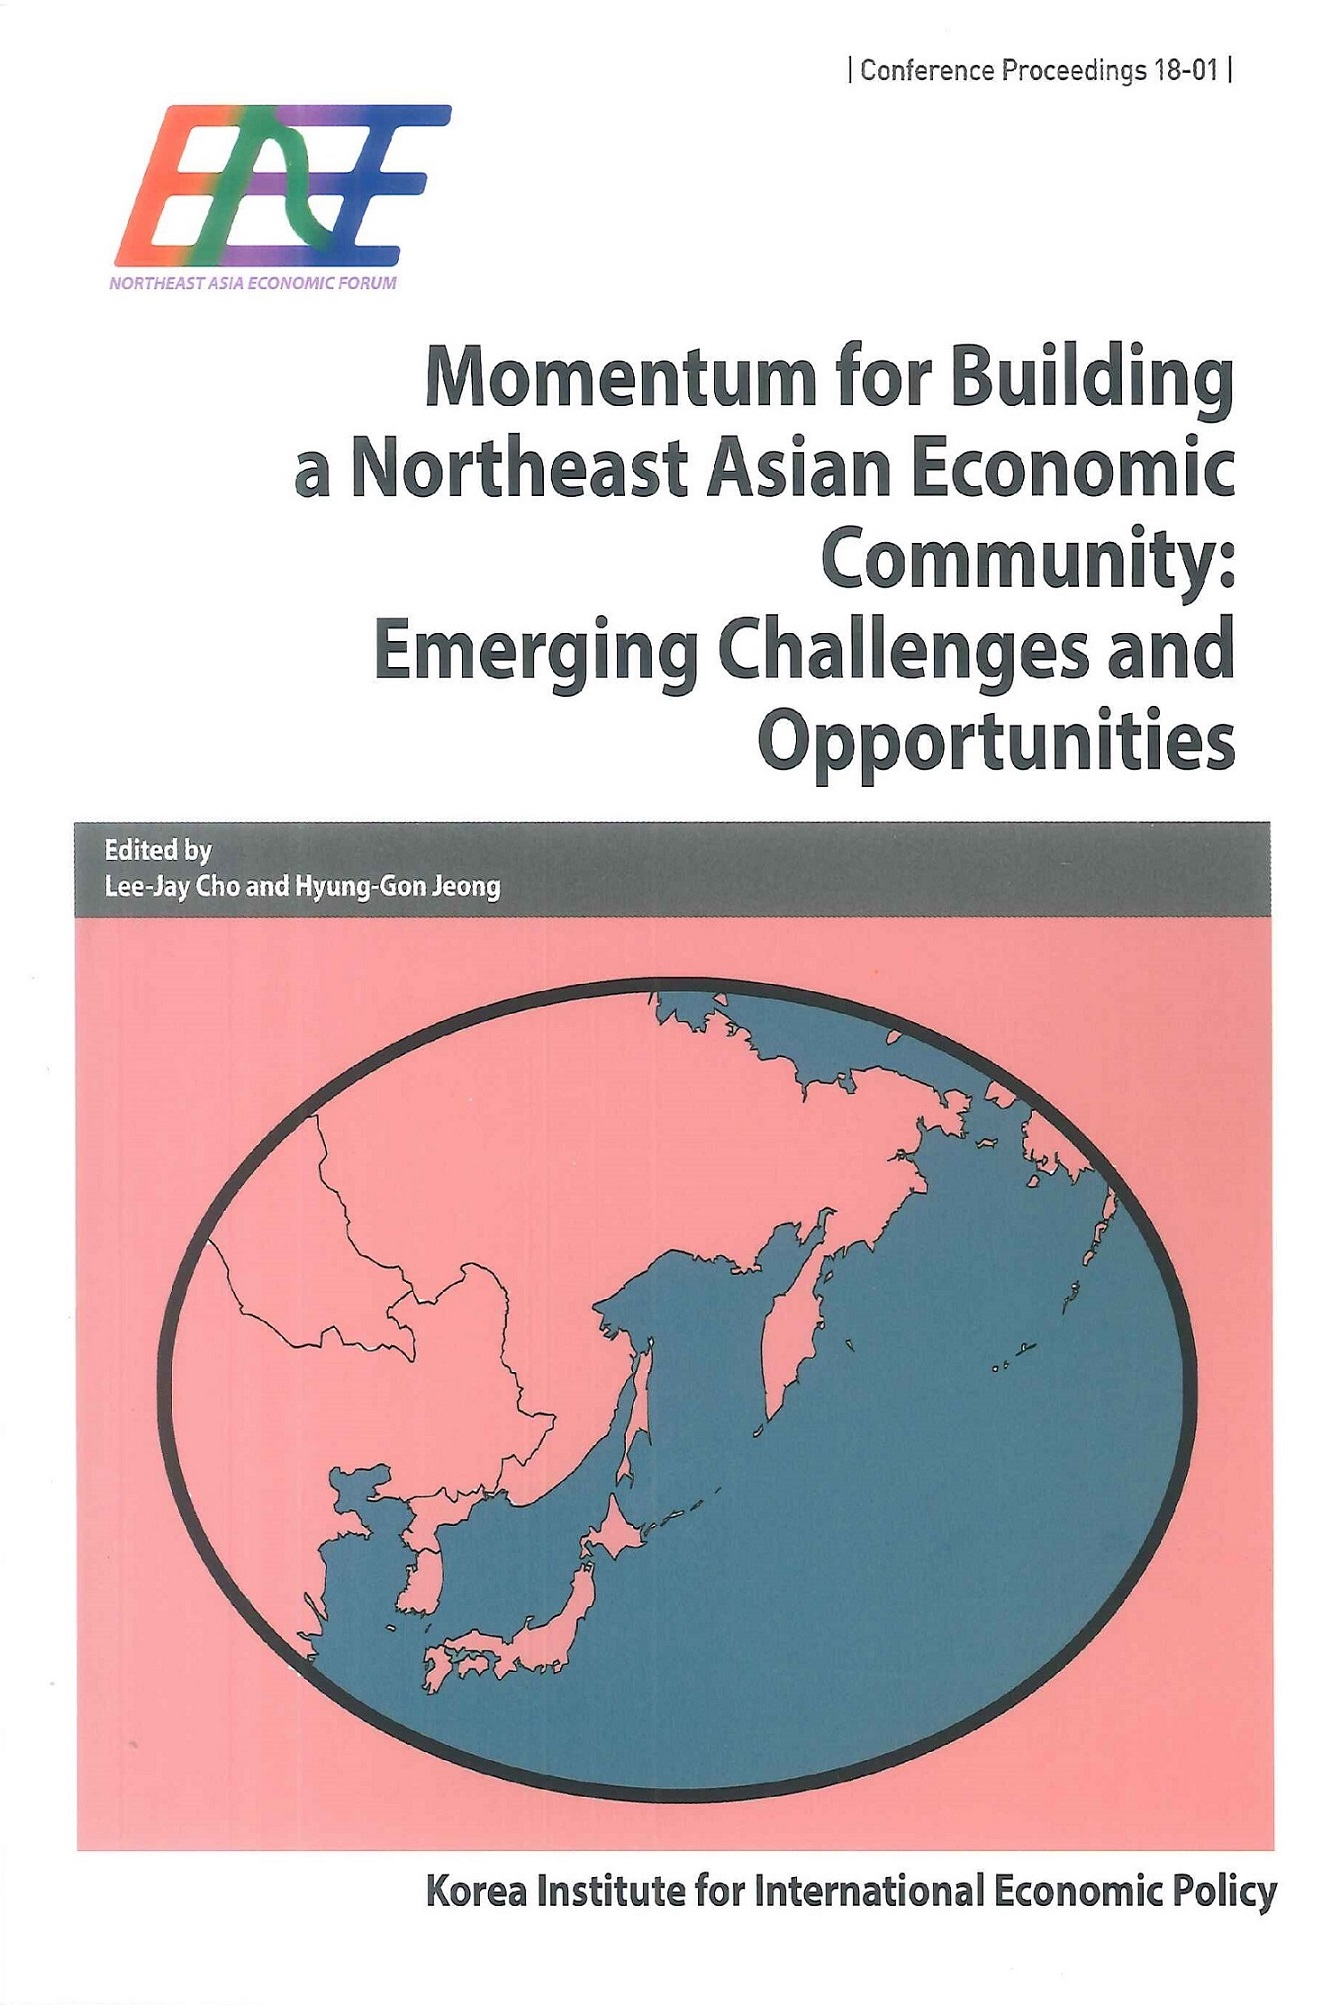 Momentum for building a Northeast Asian Economic Community:emerging challenges and opportunities